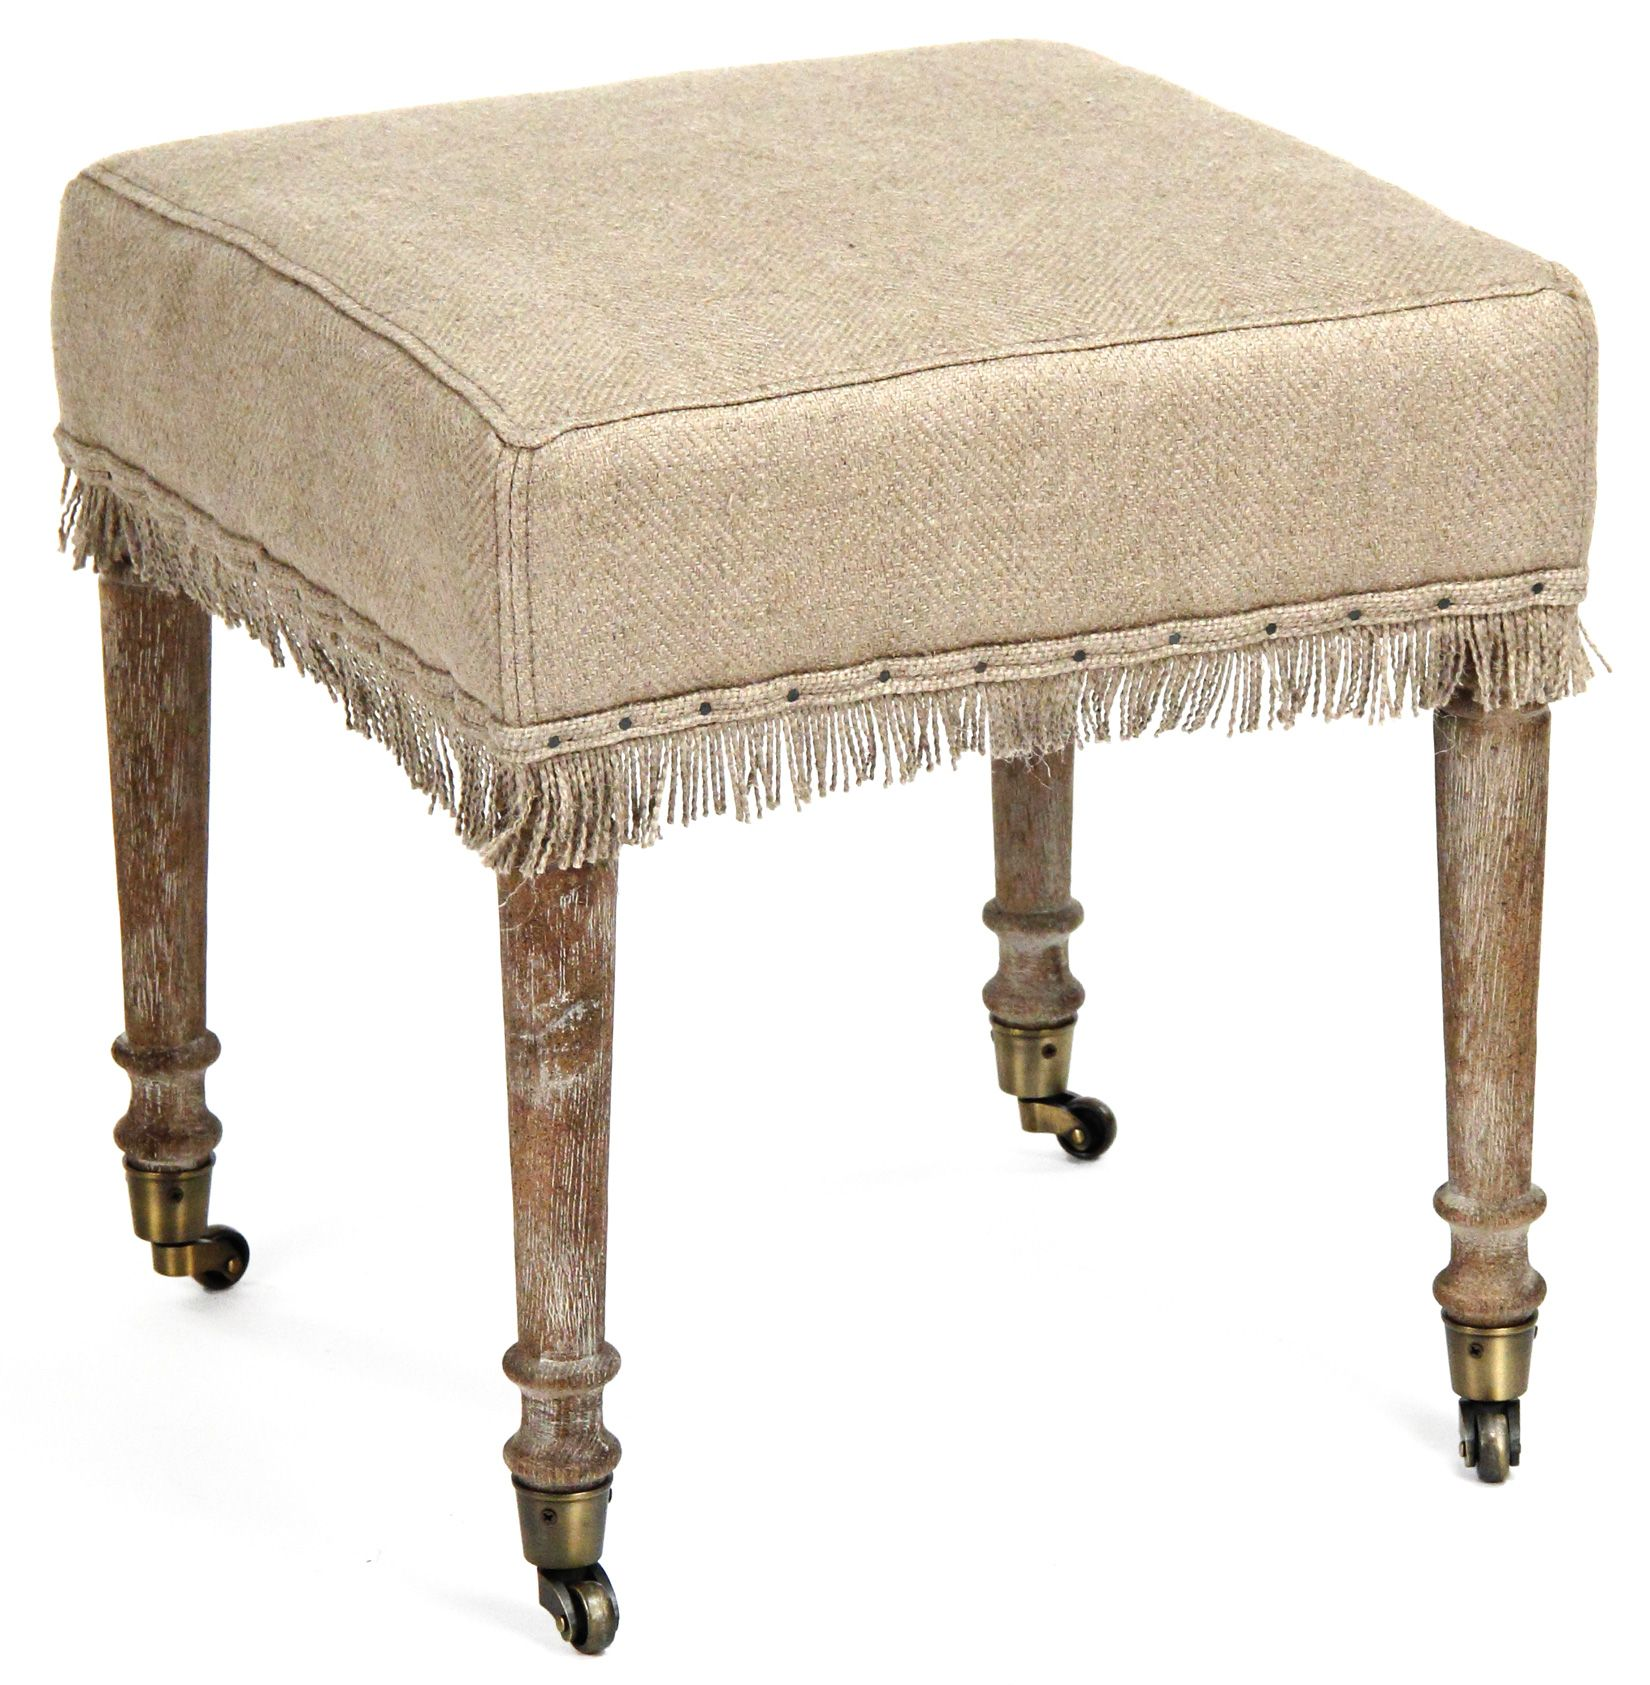 The Best Farmhouse French Ottomans | Workshop bench, French style ...